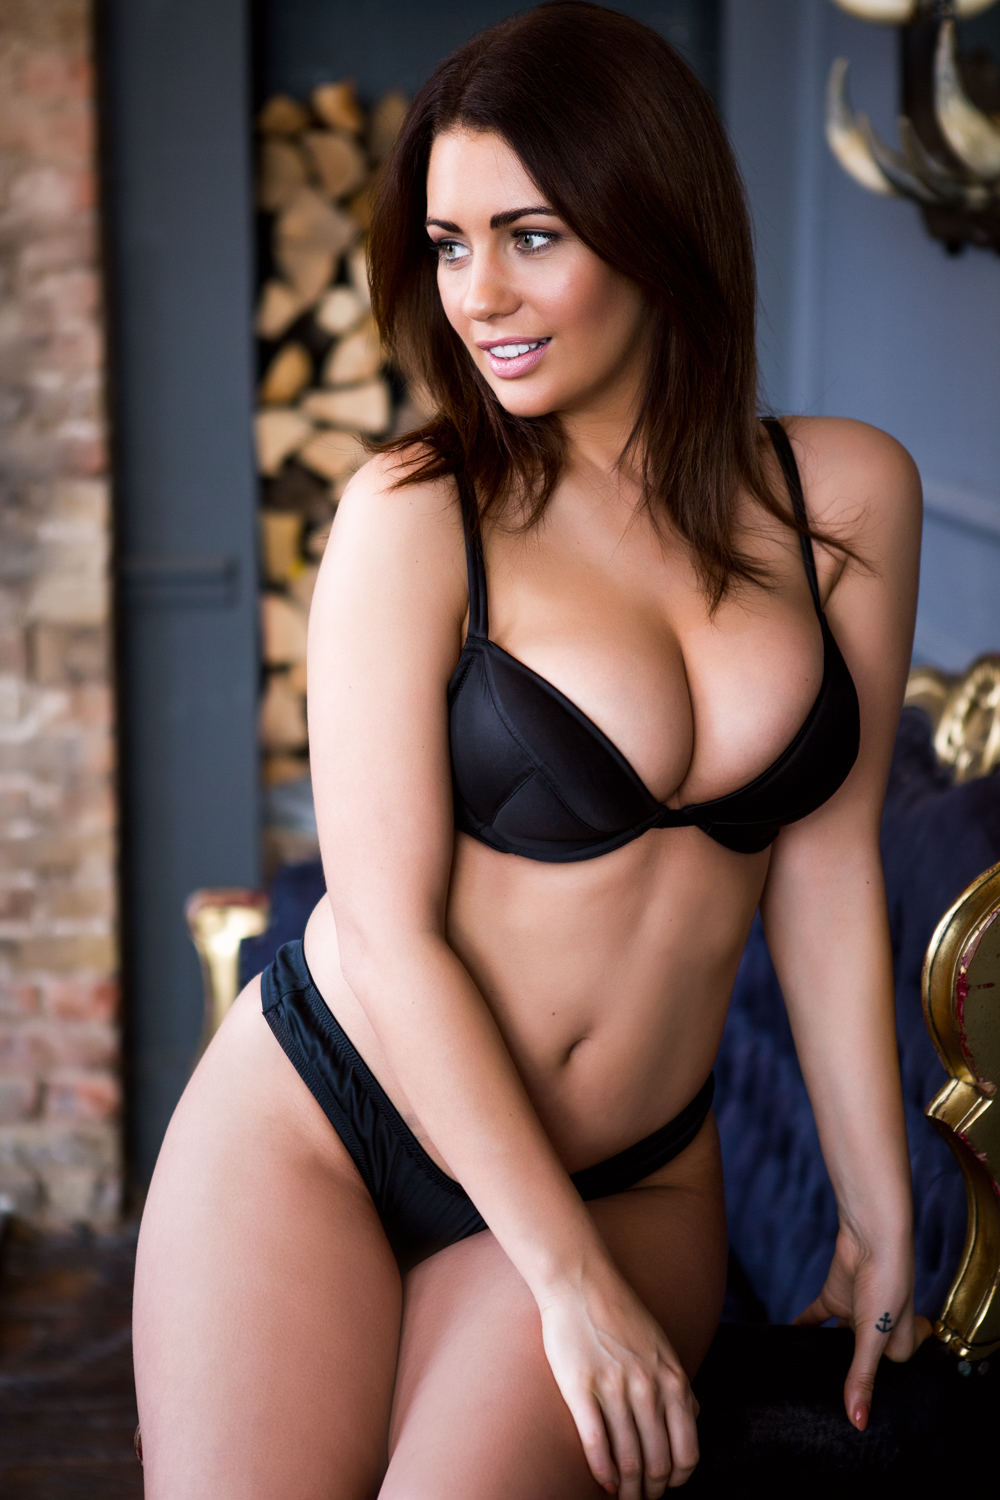 Holly Peers-20170320-01 By Sam Riley